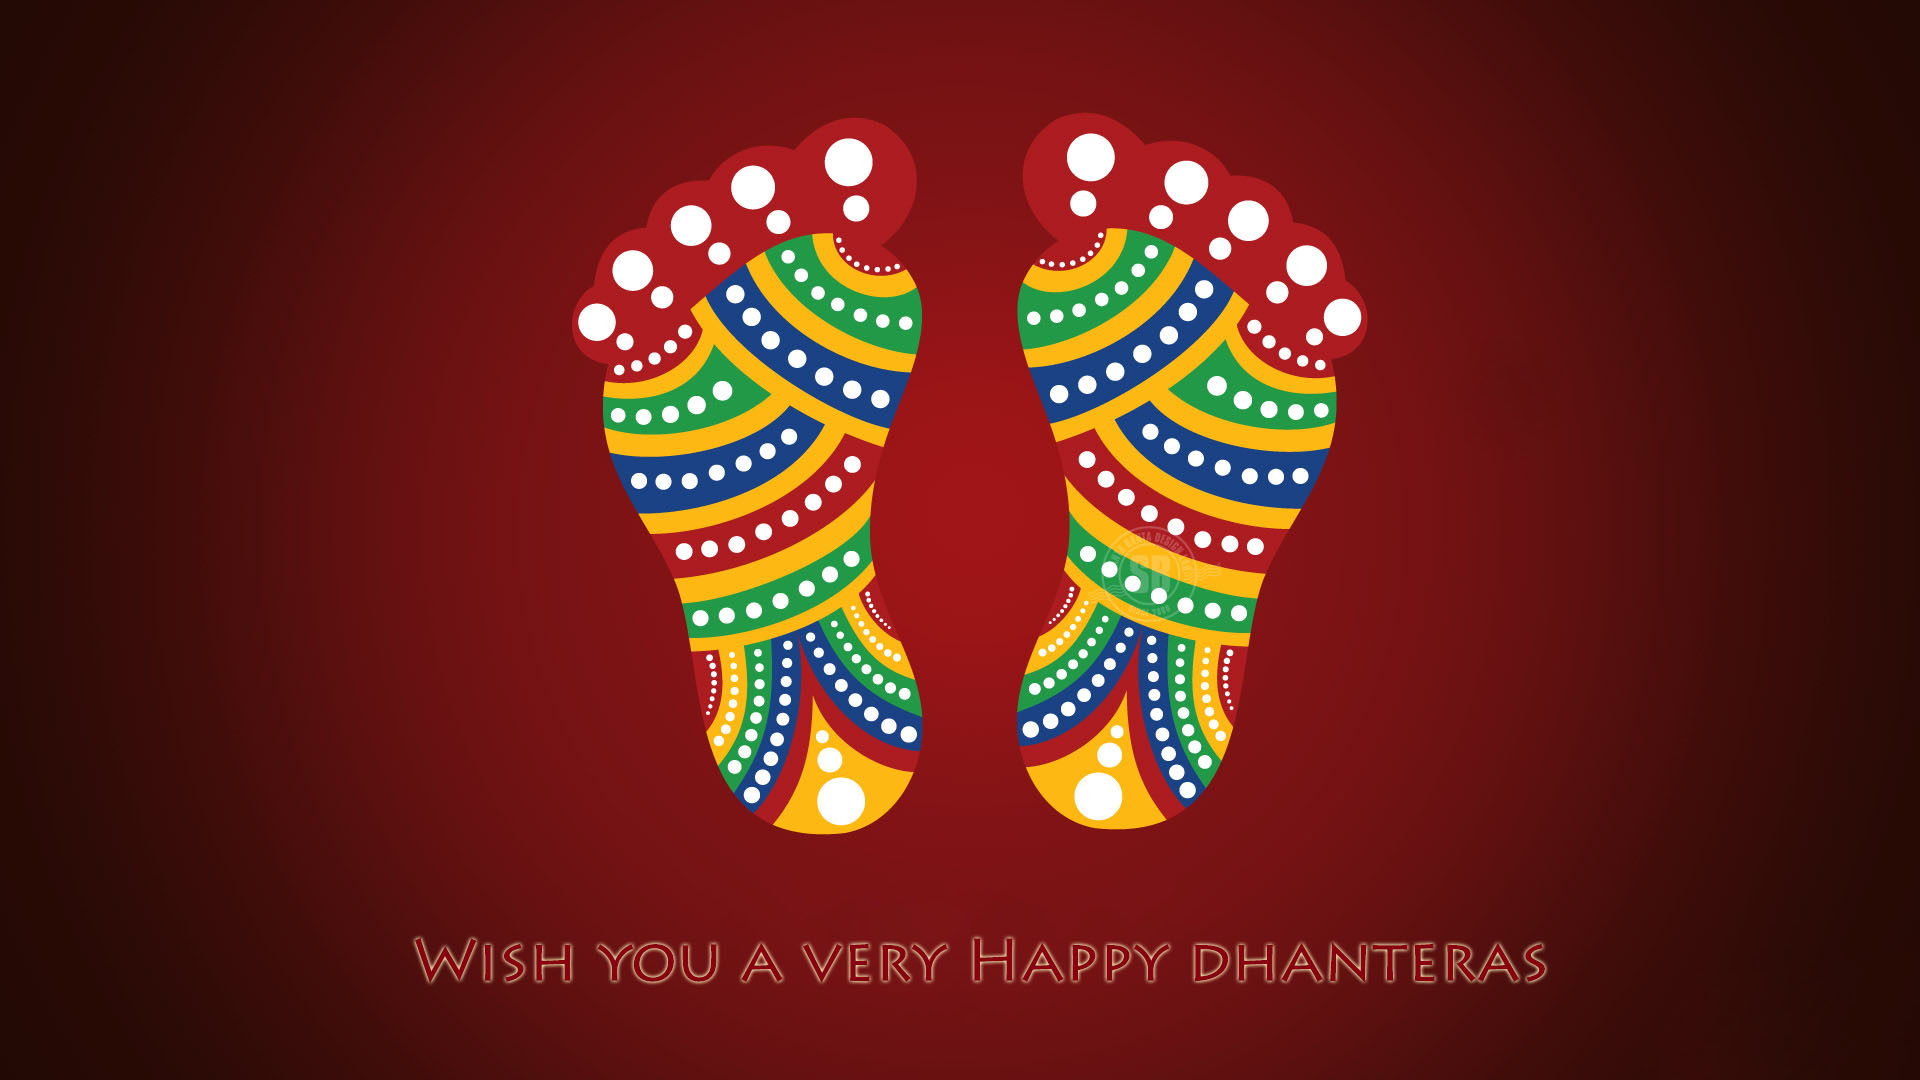 Dhanteras Hd Wallpaper Free Download